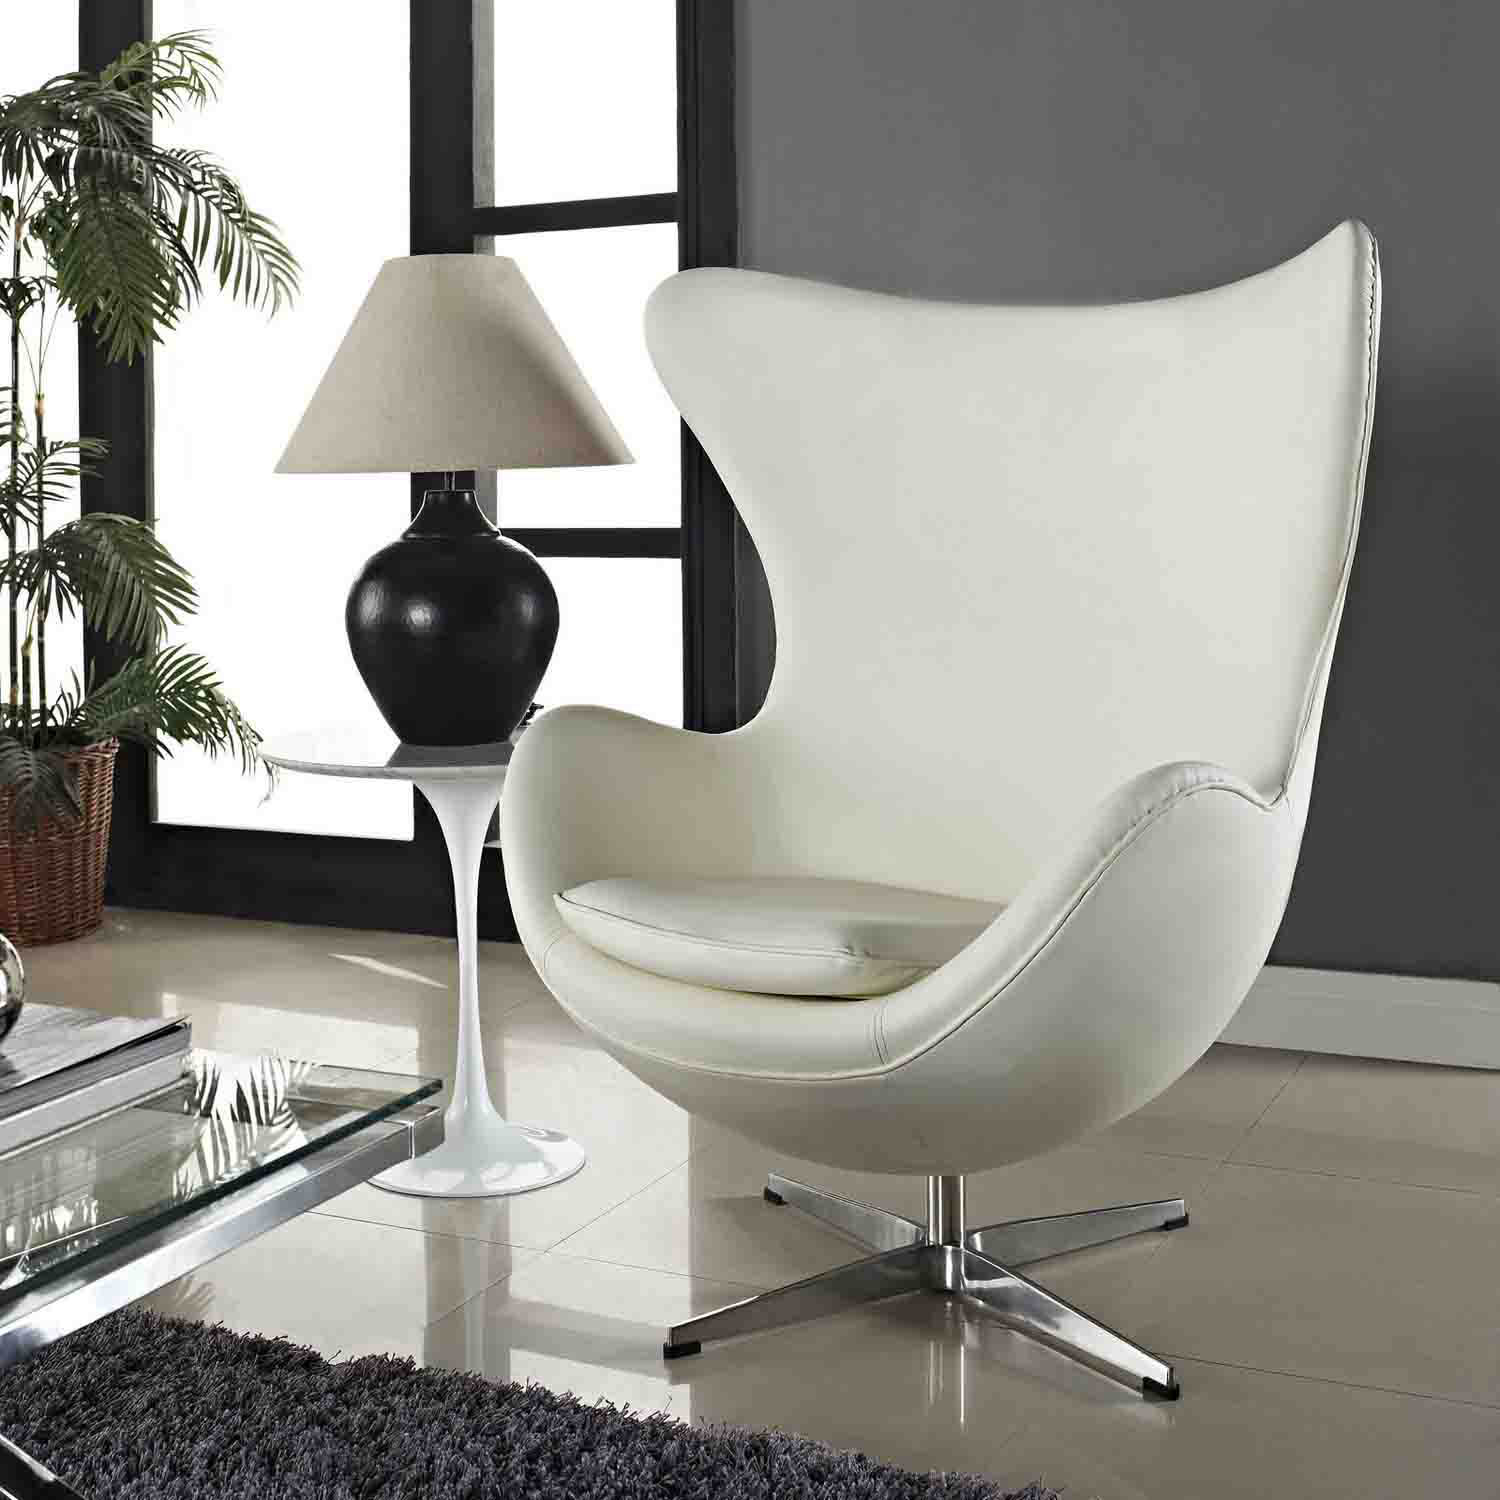 Modway Glove Leather Lounge Chair - White